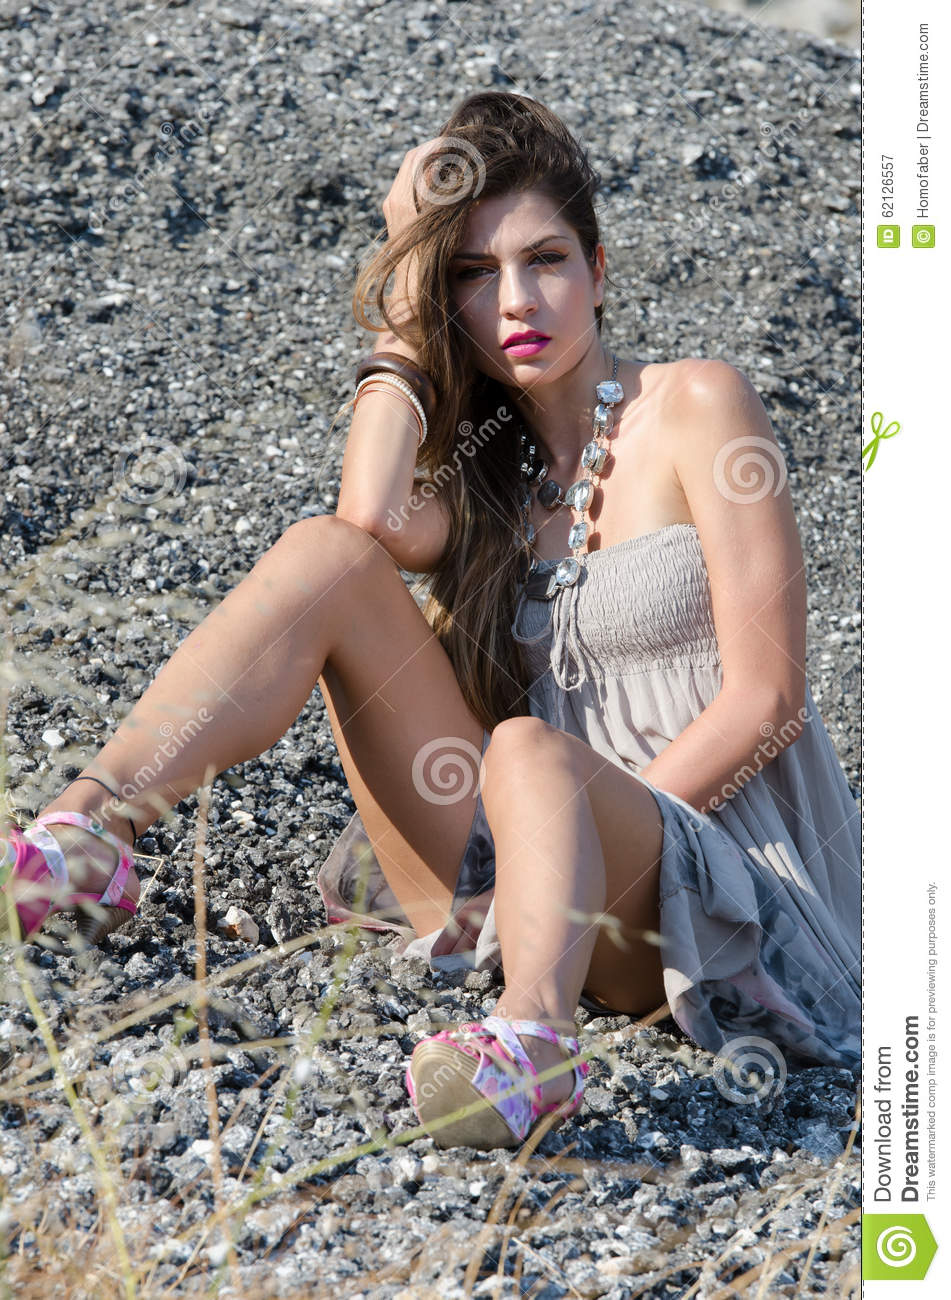 Outdoor fashion shoot sitting on rocky ground